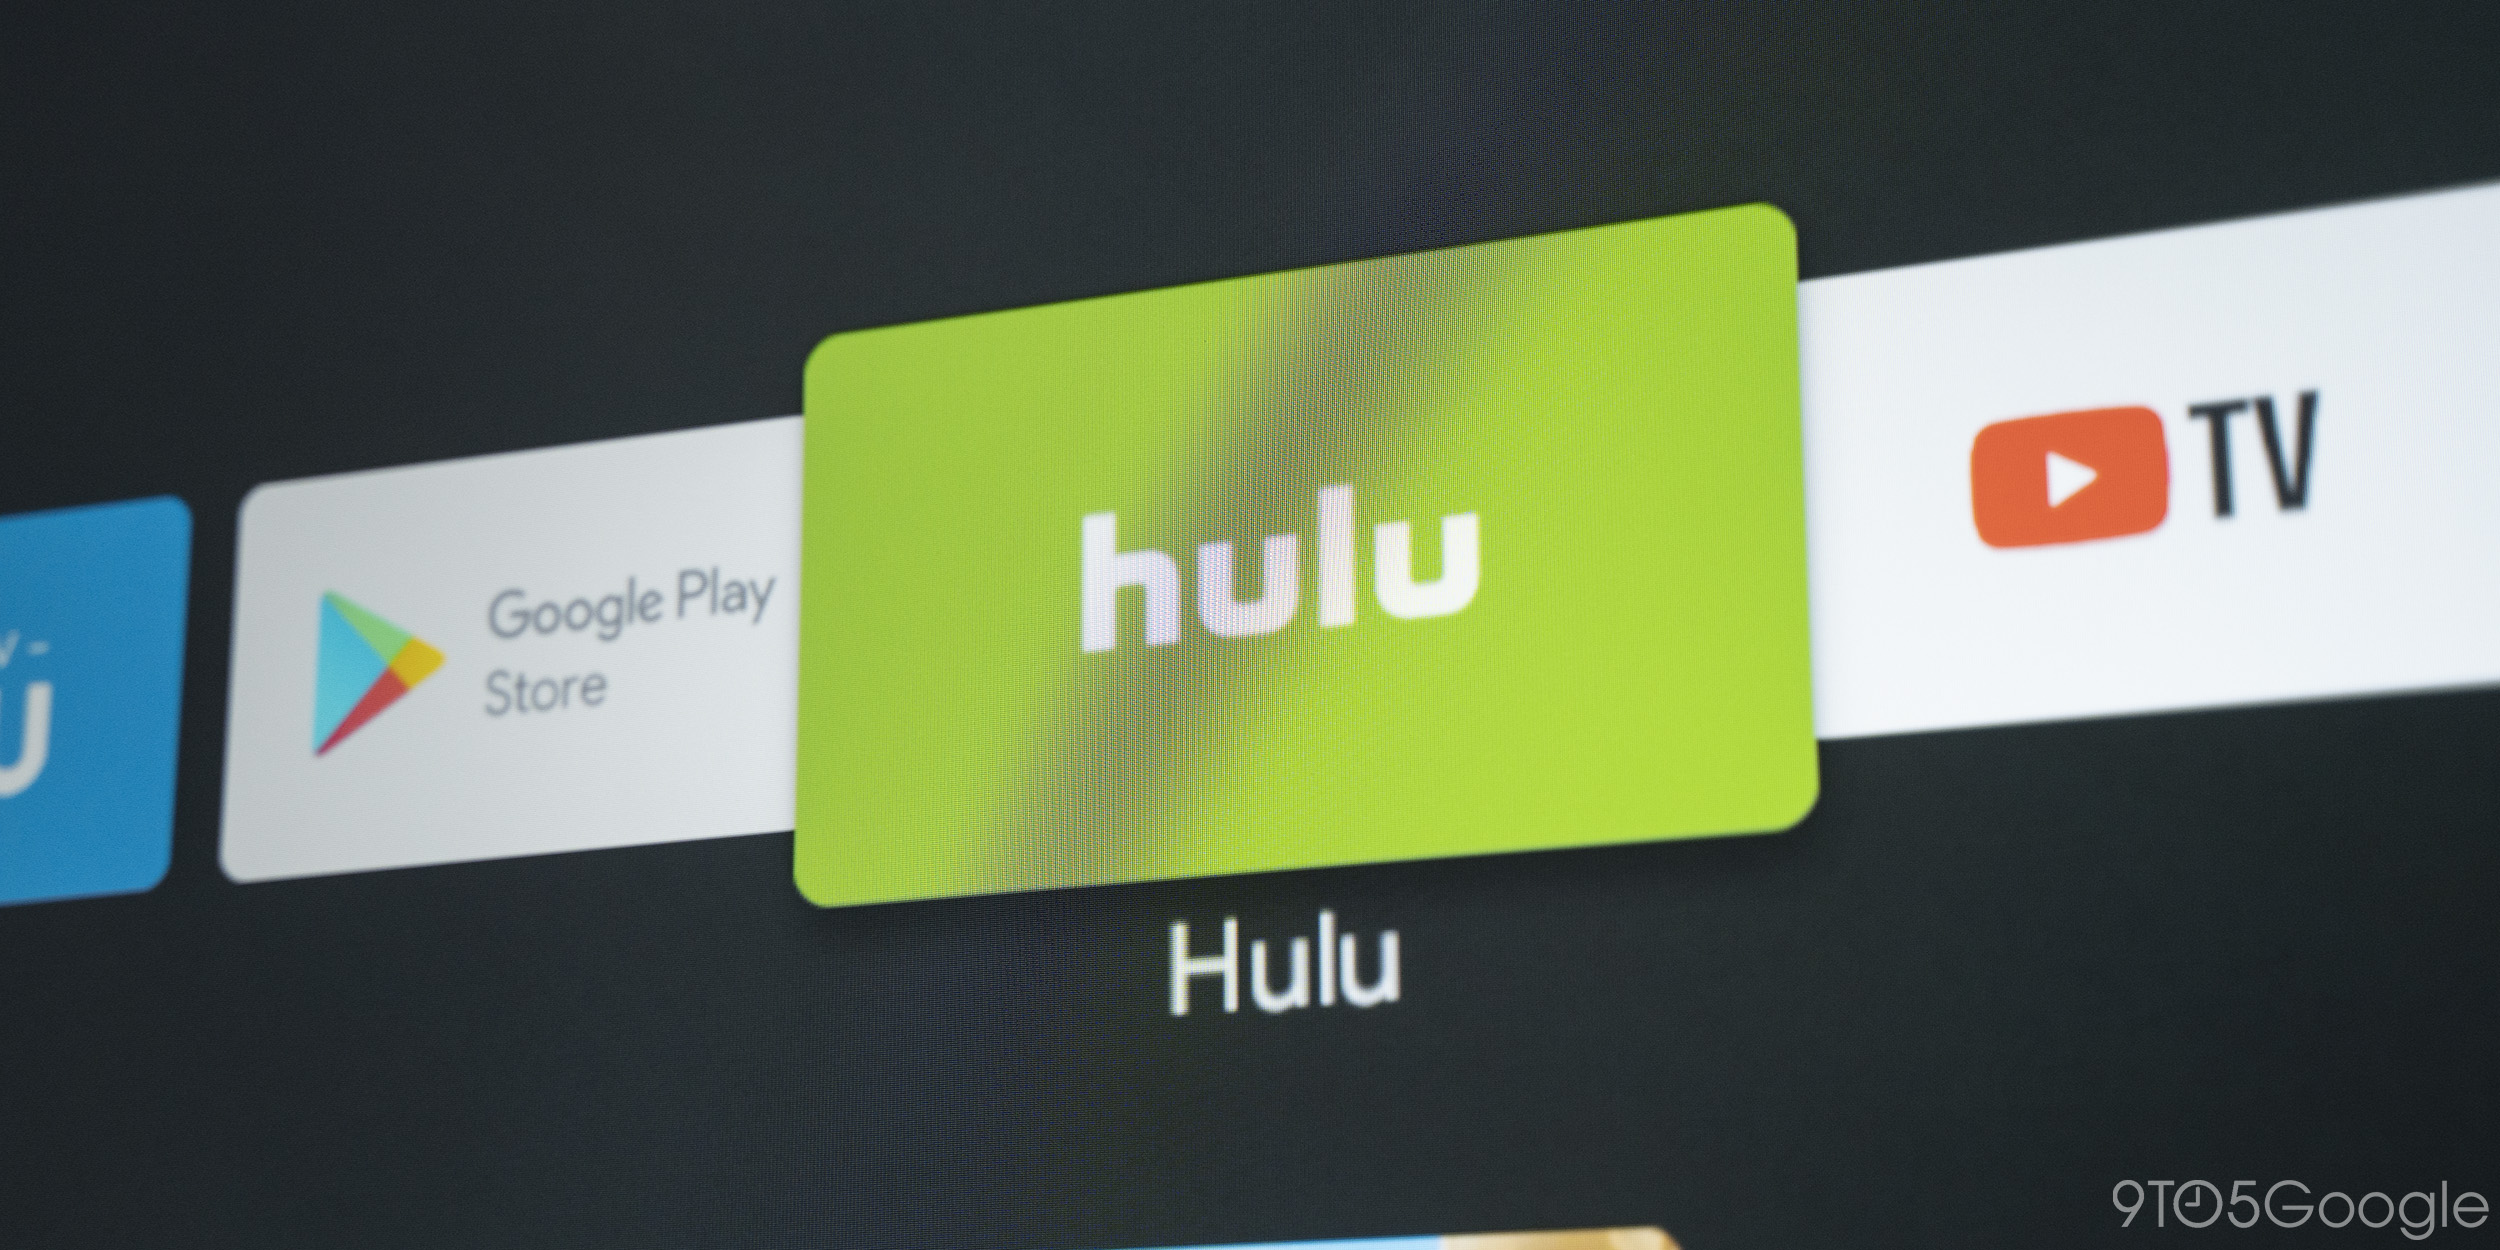 Hulu is finally updating its Android TV app w/ new interface, Live